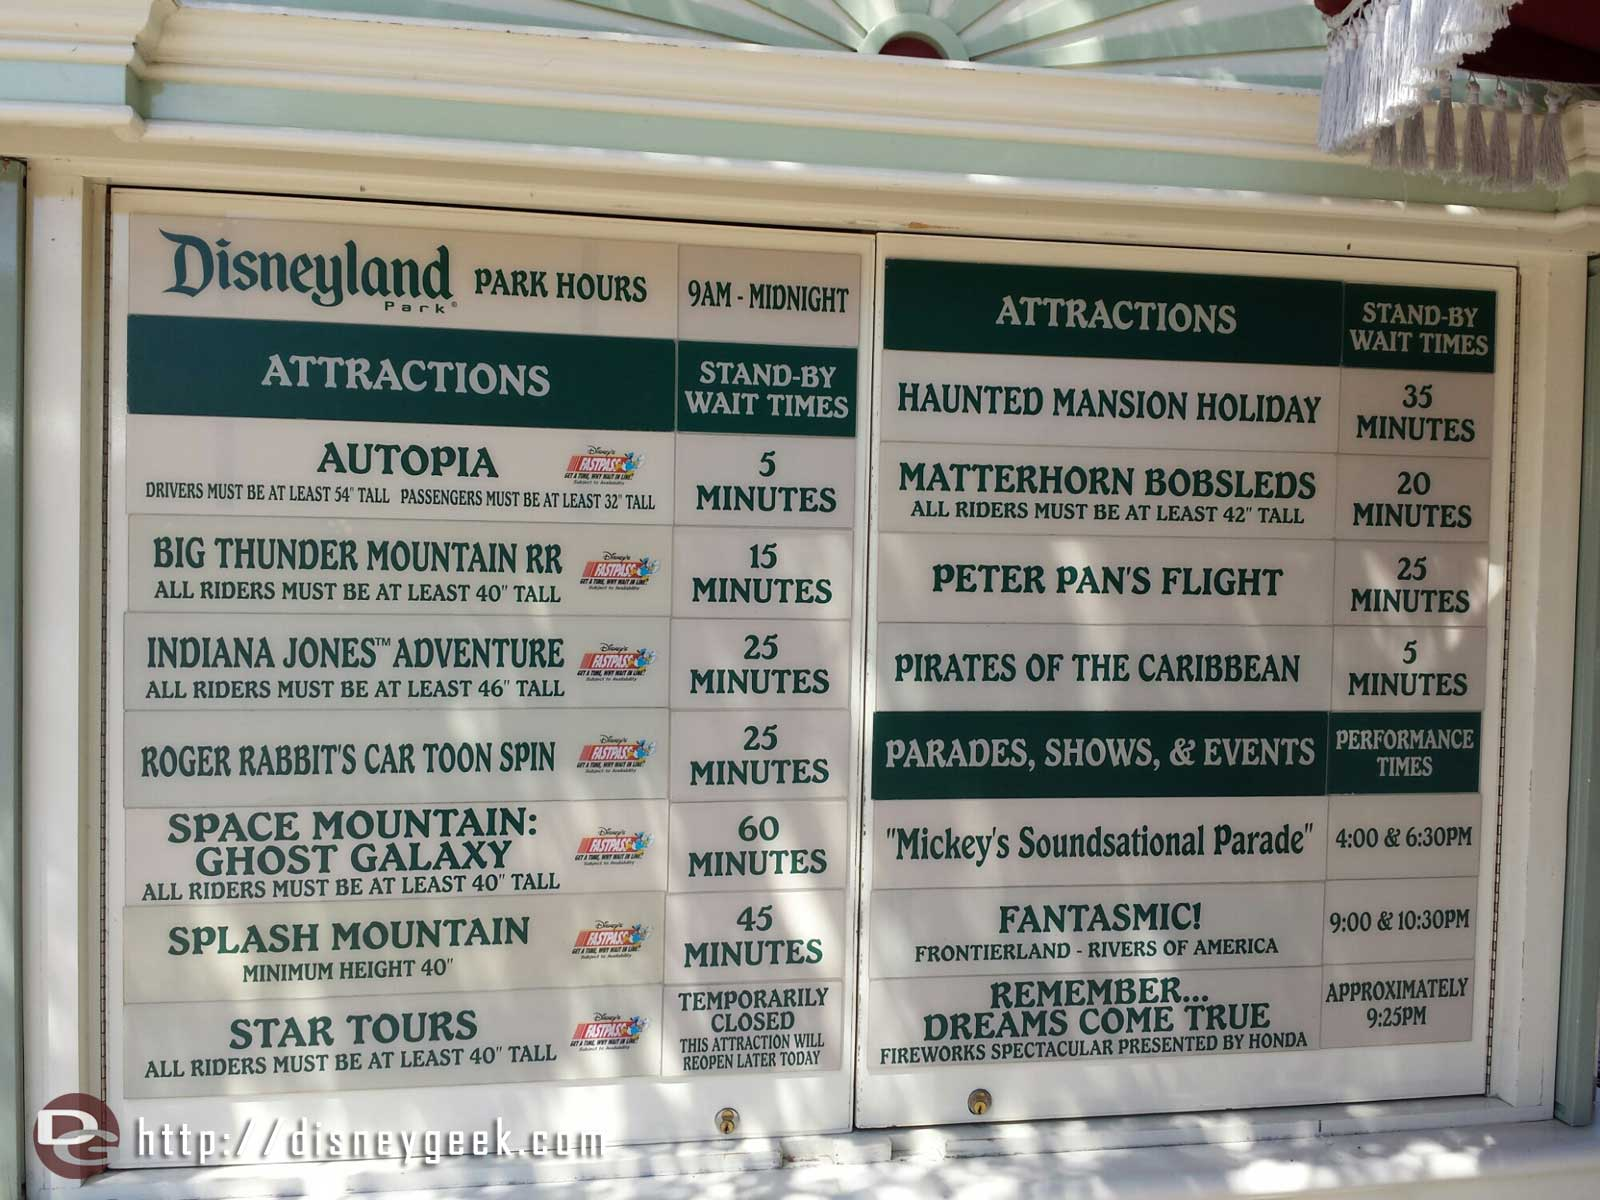 #Disneyland waits as of 1:24pm